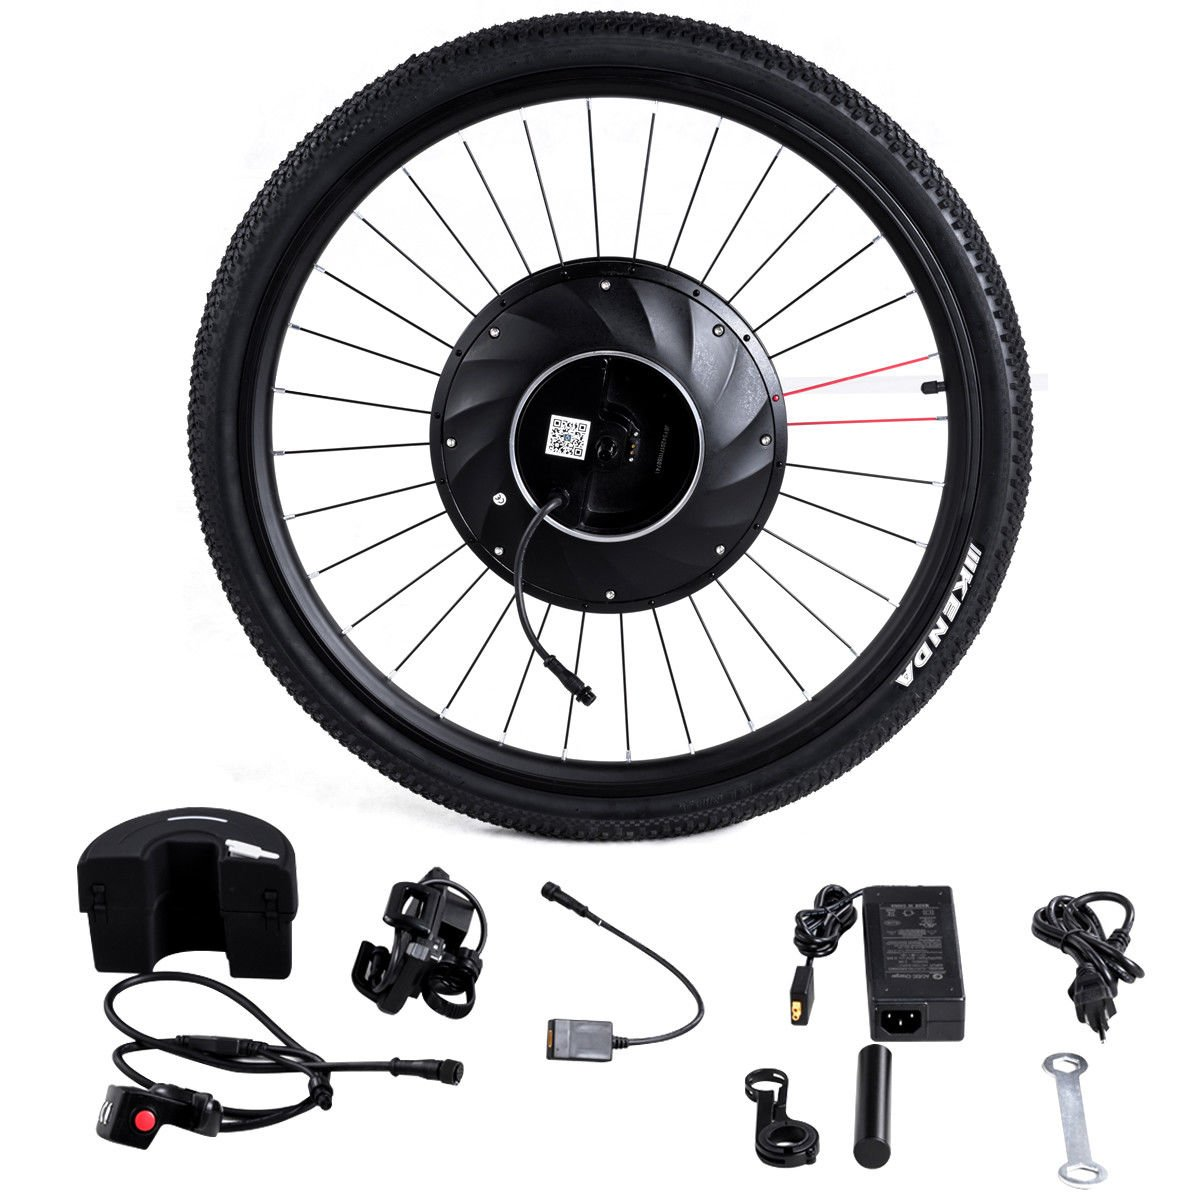 Goplus 26'' Front Bicycle Wheel Electric Bicycle Motor Kit E-Bike Conversion Kit Bicycle Accessories Set w/APP Interaction, Battery and USB Charger, 36V 240W